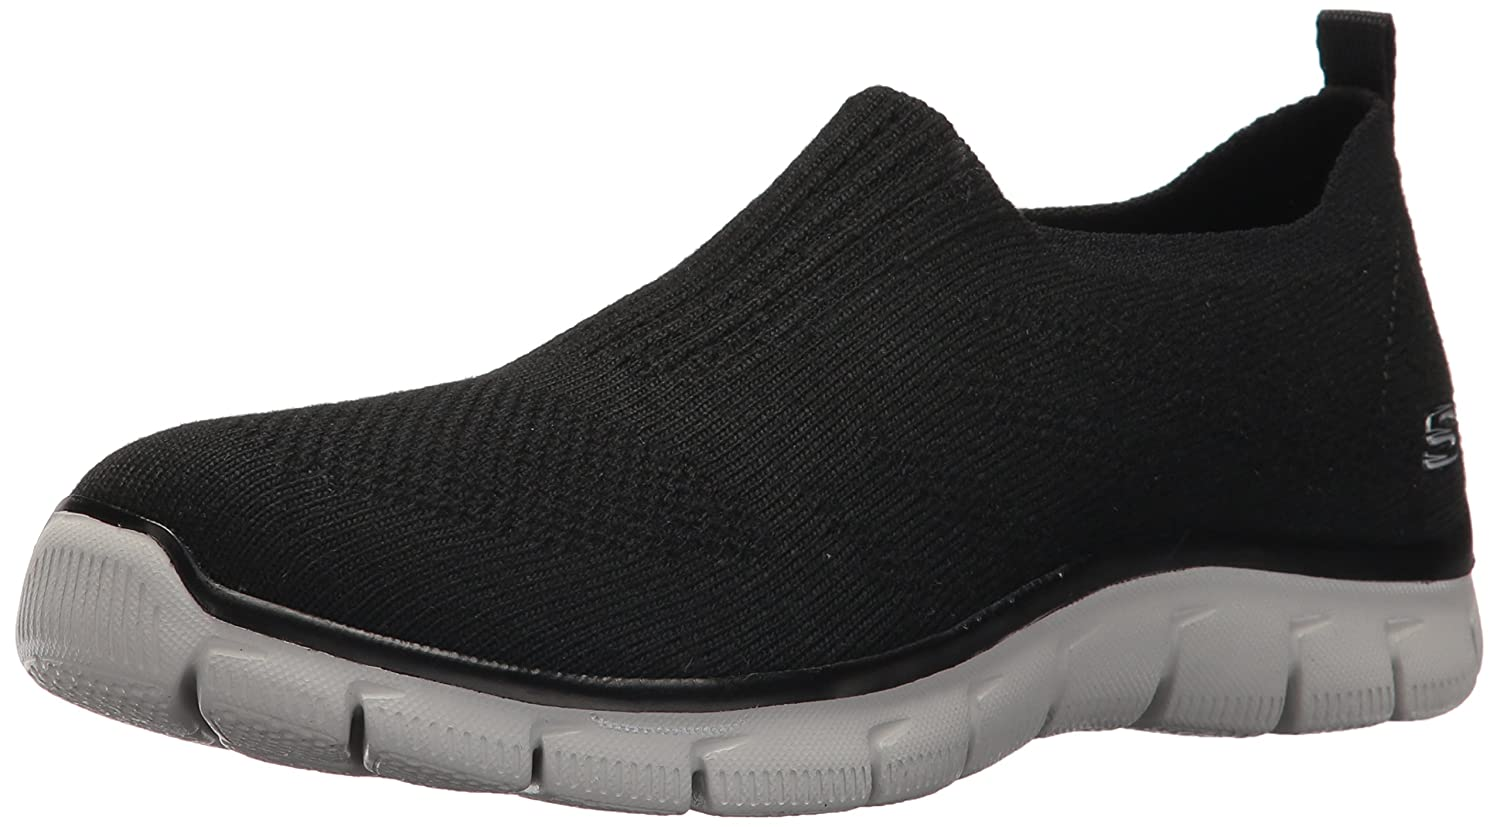 Skechers Women's Empire Clear As Day Sneaker B01MZC5AM2 6.5 B(M) US|Black 1